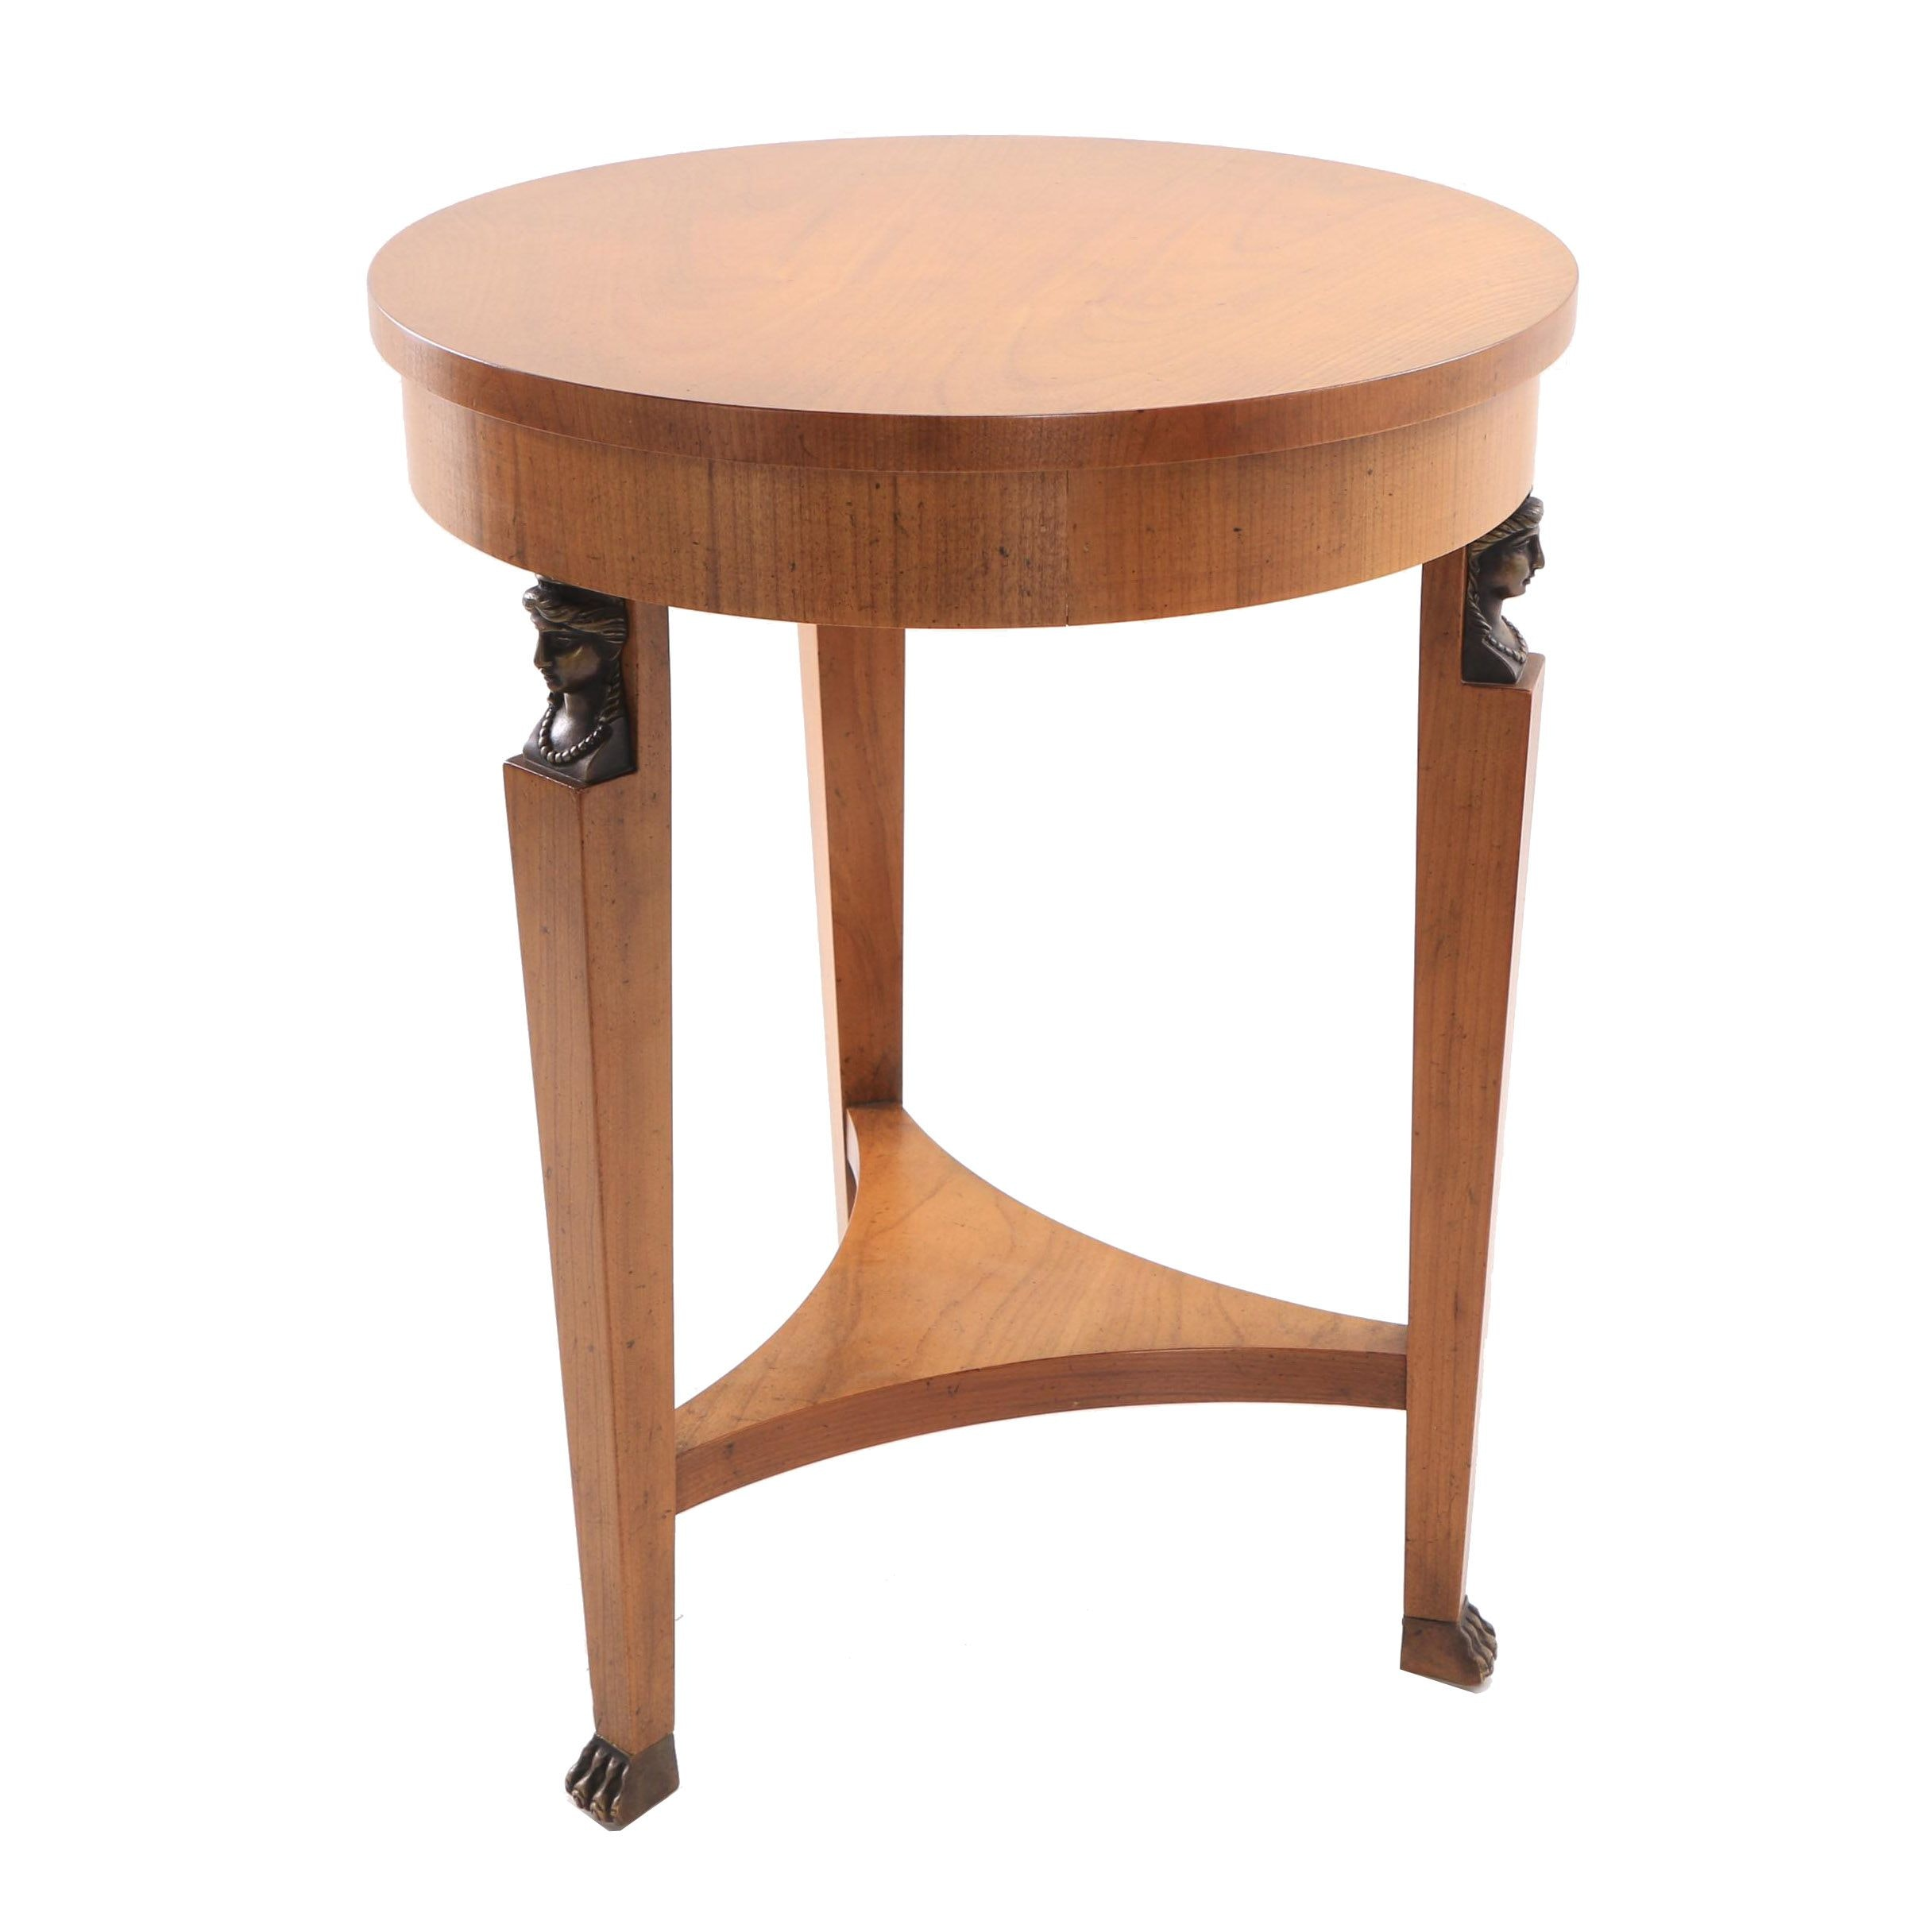 Empire Style Maple Accent Table by Baker Furniture, Late 20th Century